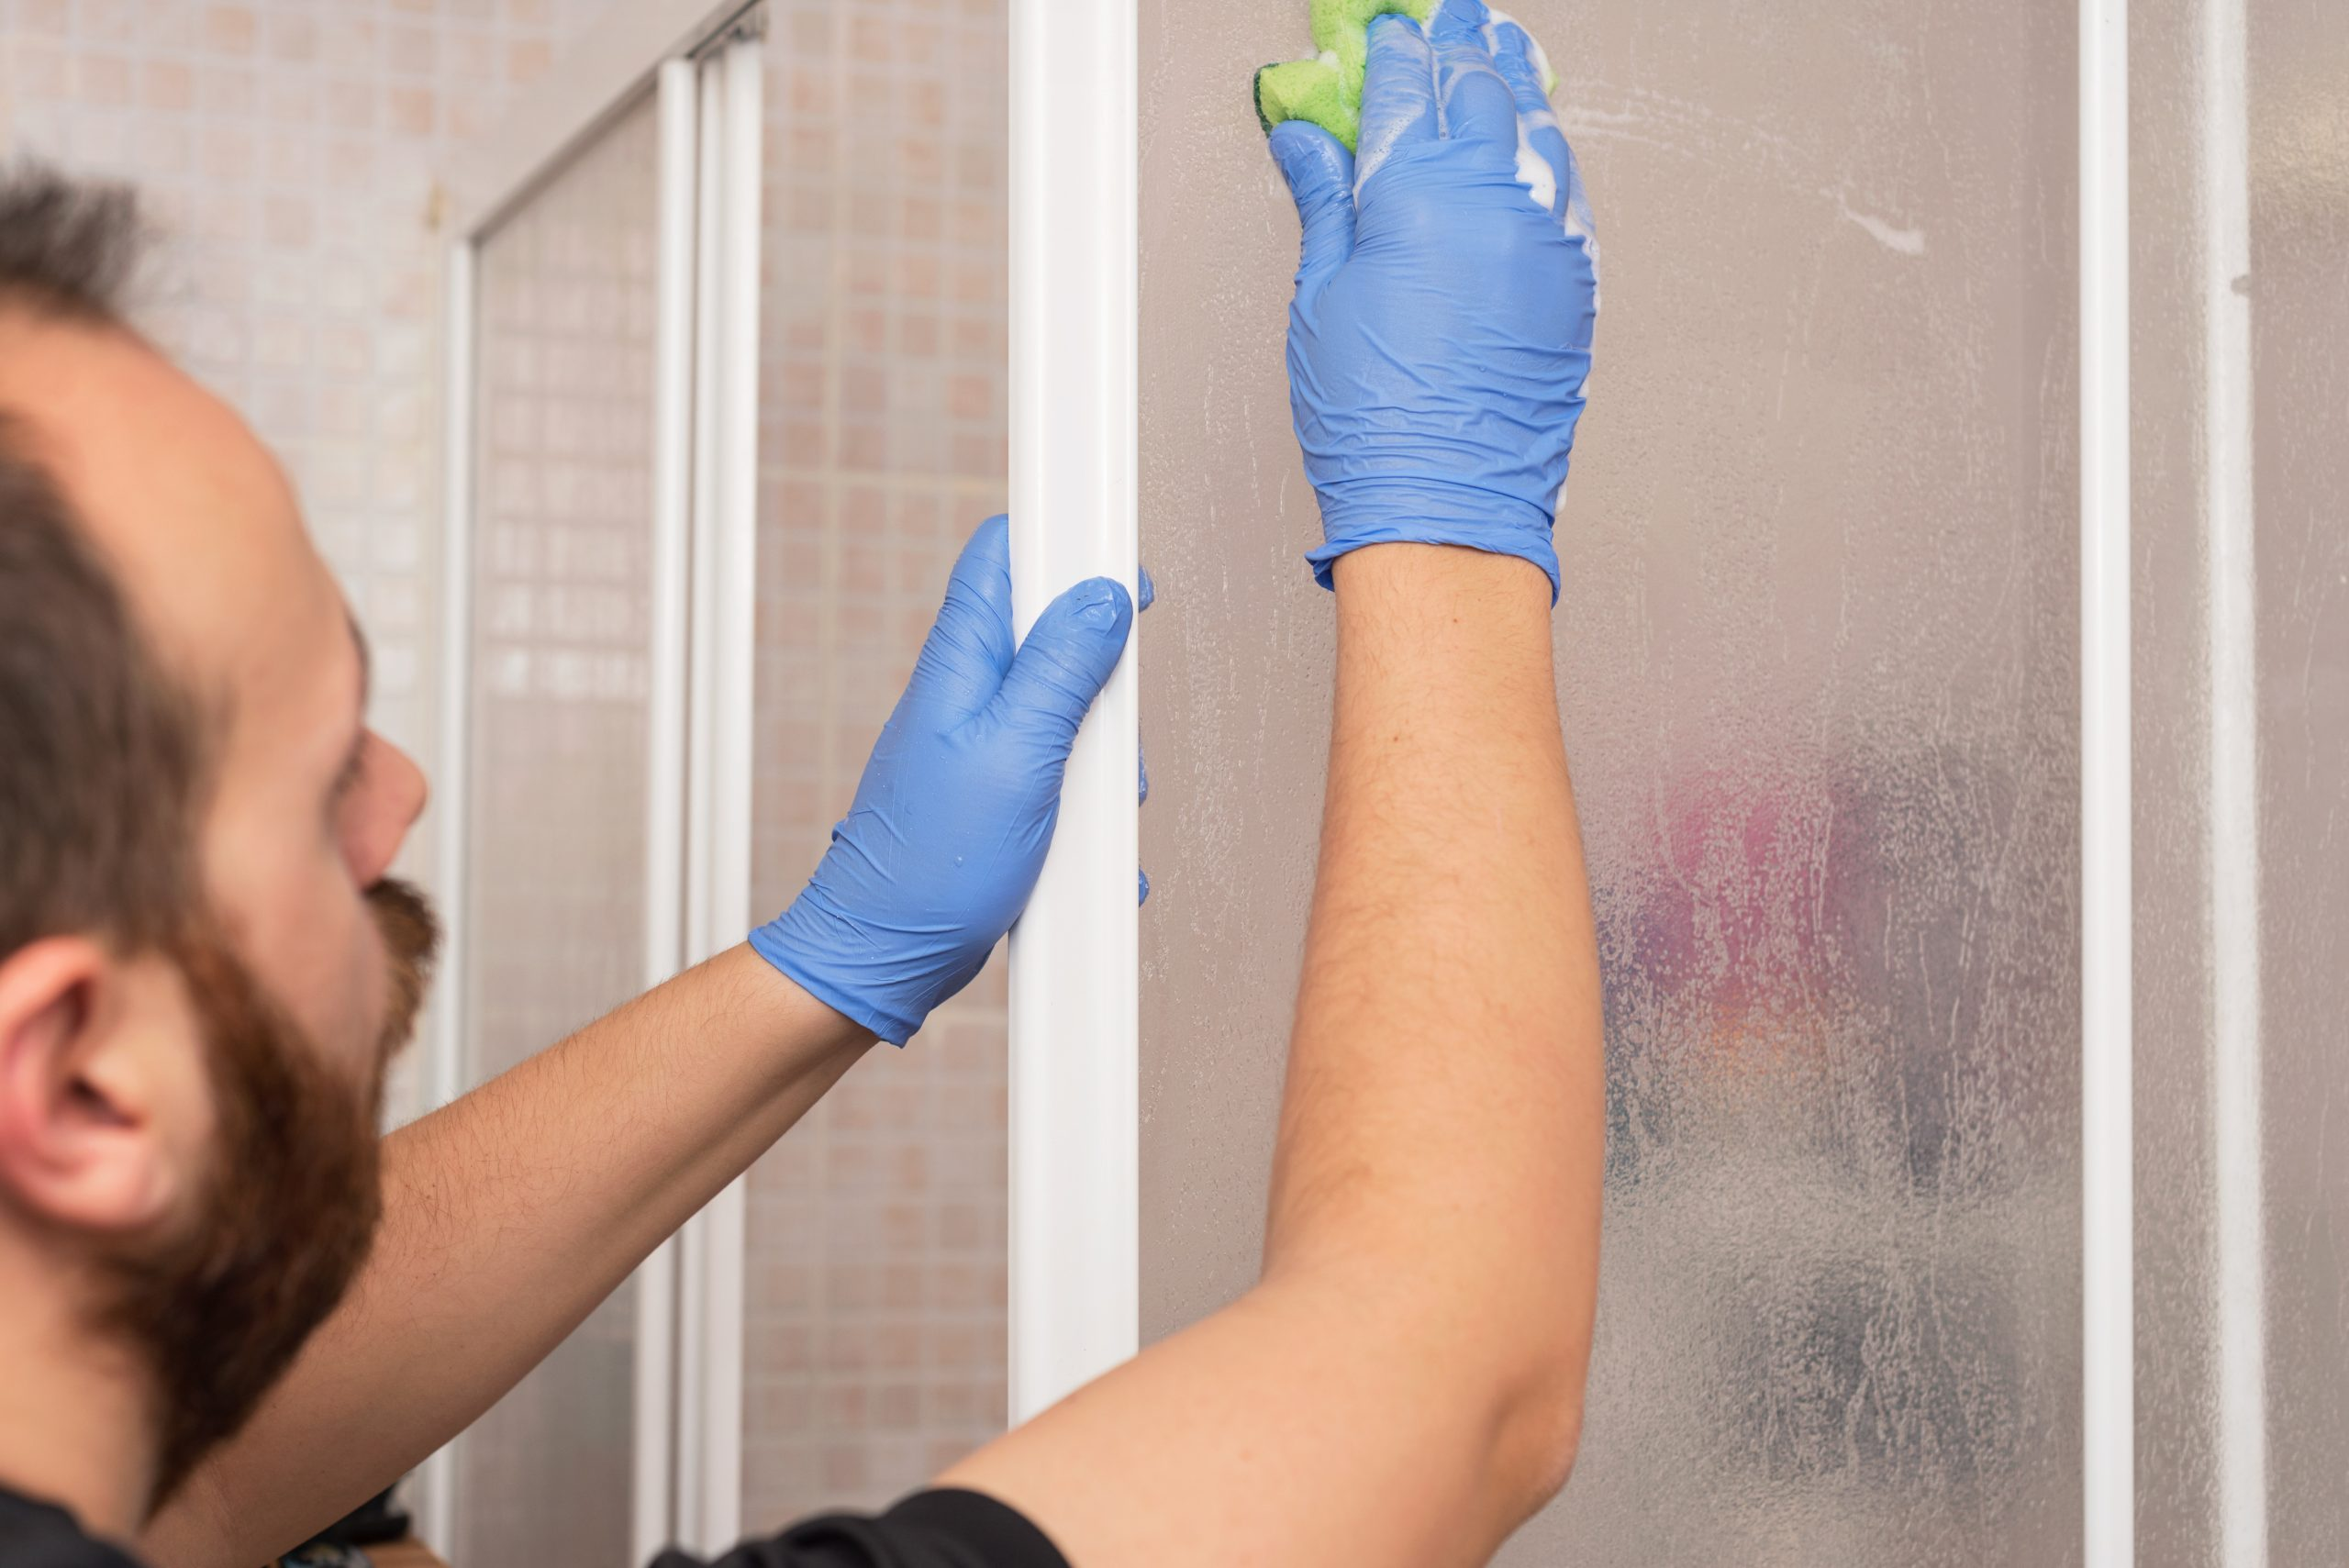 Removing Soap and Streaks from Shower Doors | Pittsburgh | Terrys Plumbing